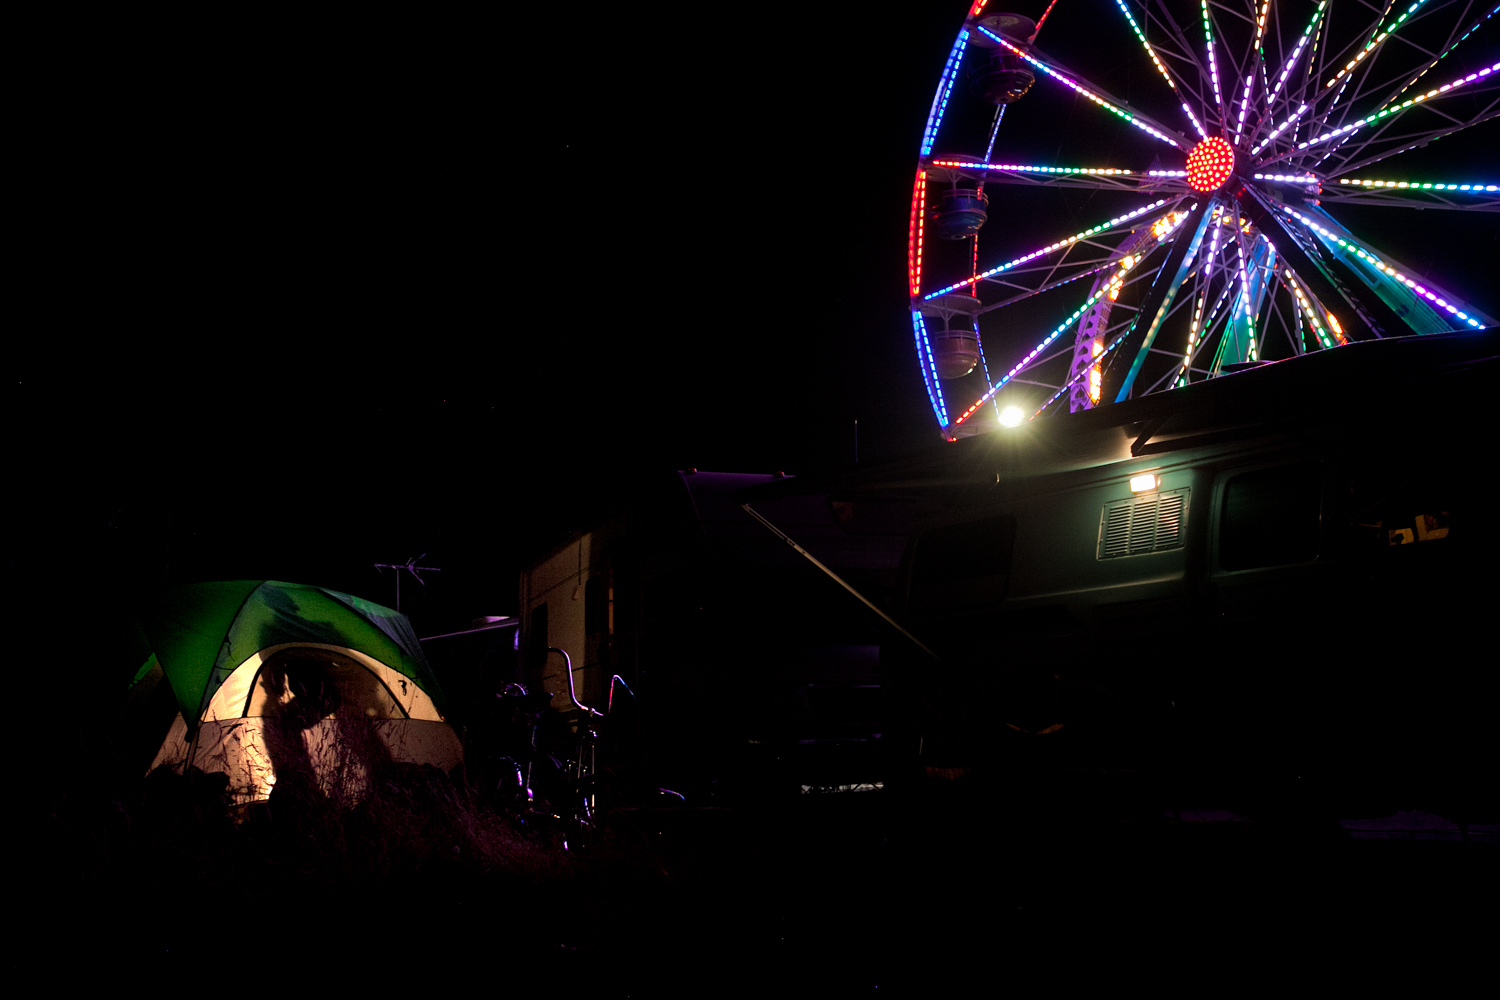 Workers setup camp and live in close proximity to the carnival grounds. At night, a man prepares for bed in his tent while the Ferris Wheel illuminates the surrounding area.